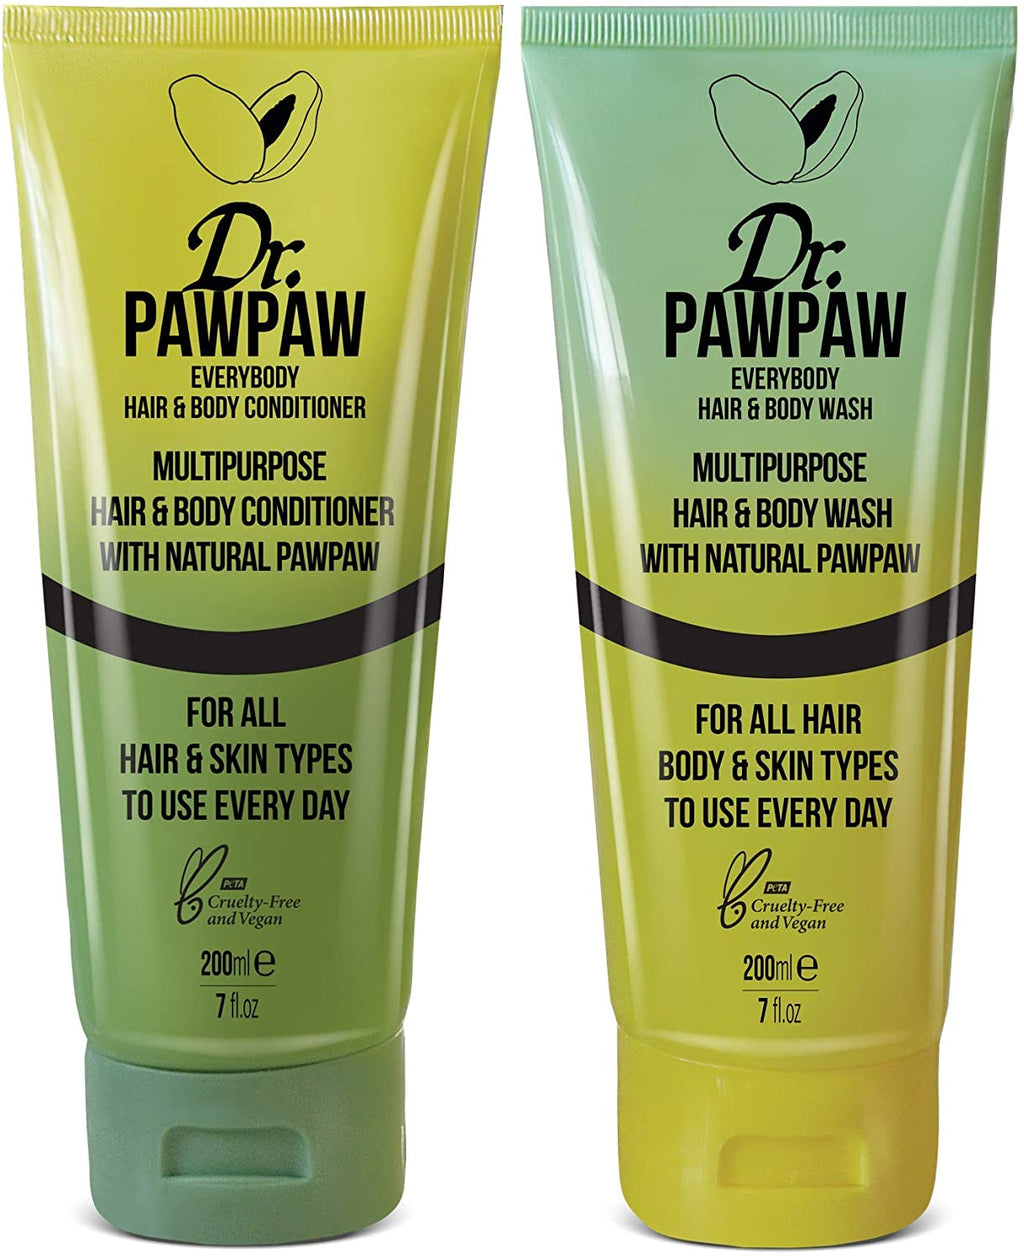 DR. PAWPAW - Multipurpose Hair & Body Conditioner 200ml